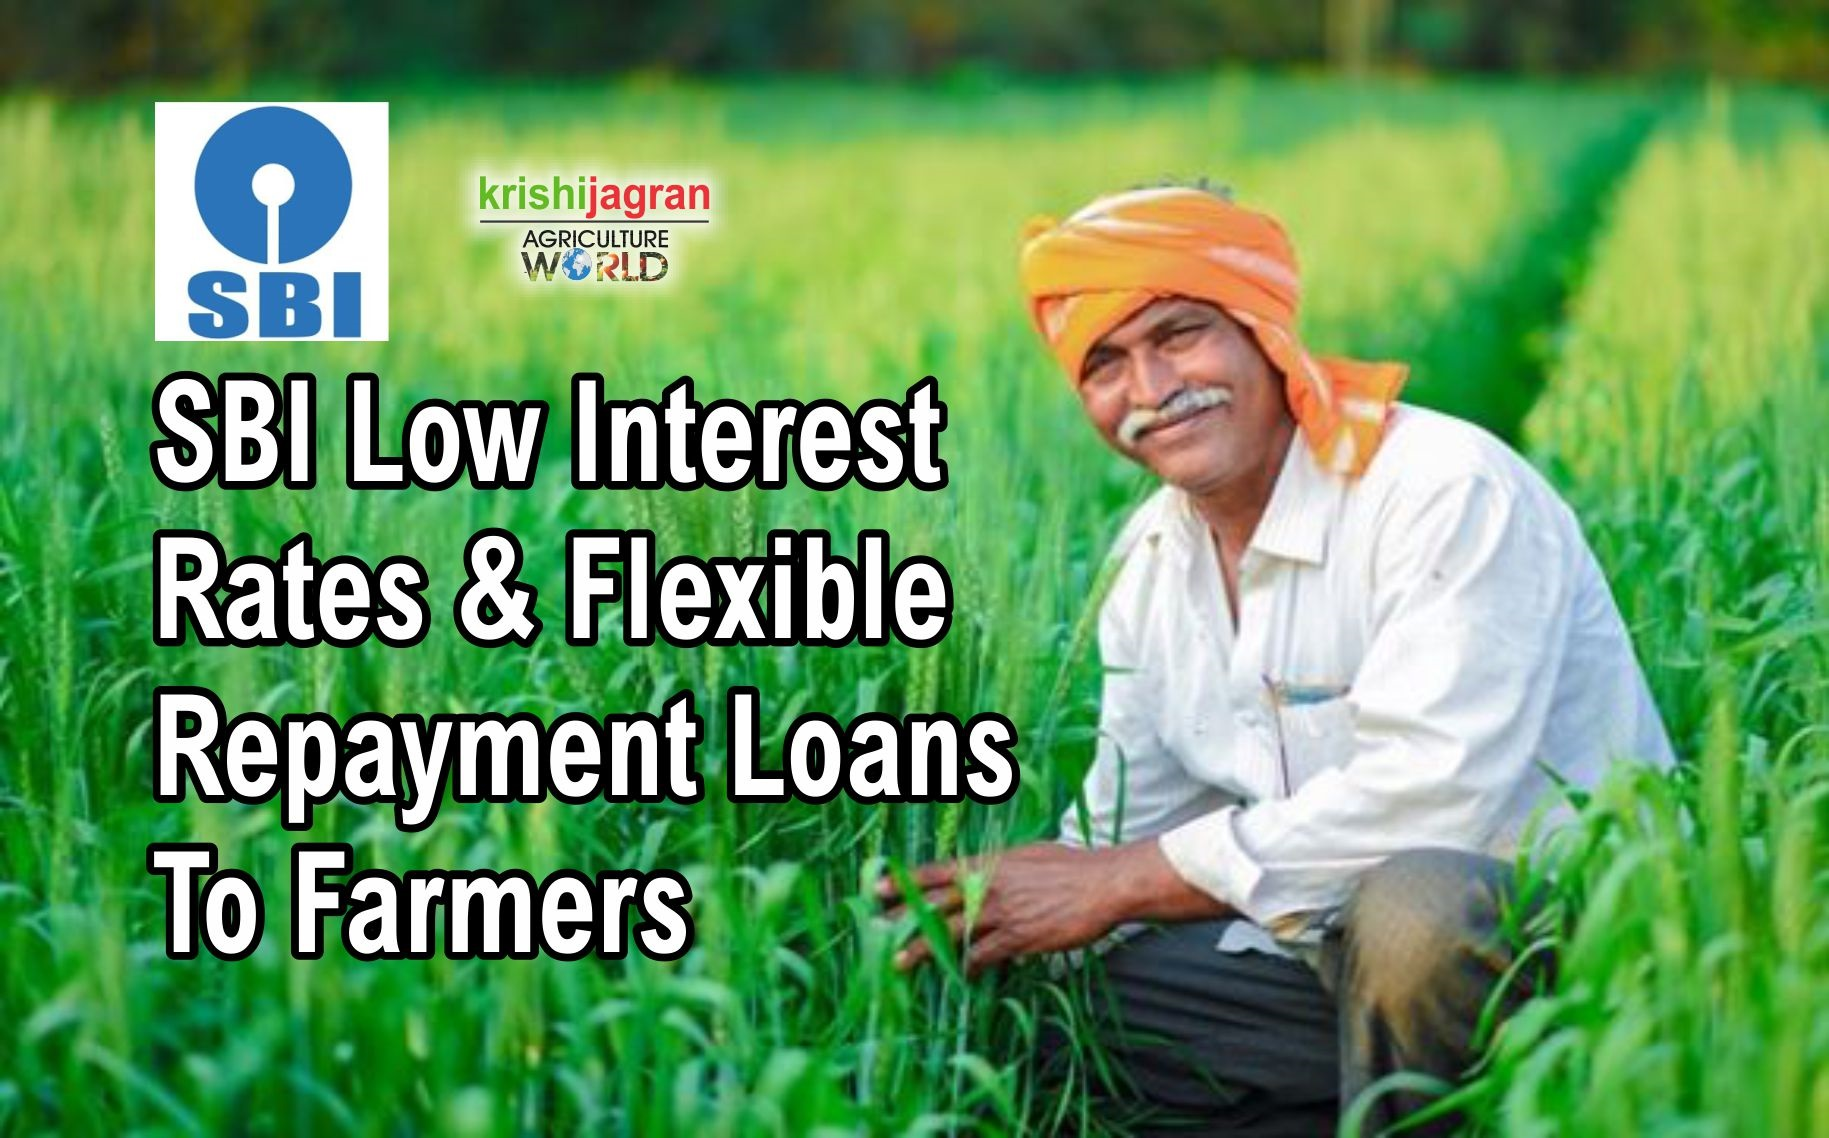 SBI offers special agriculture loan with 4 % interest